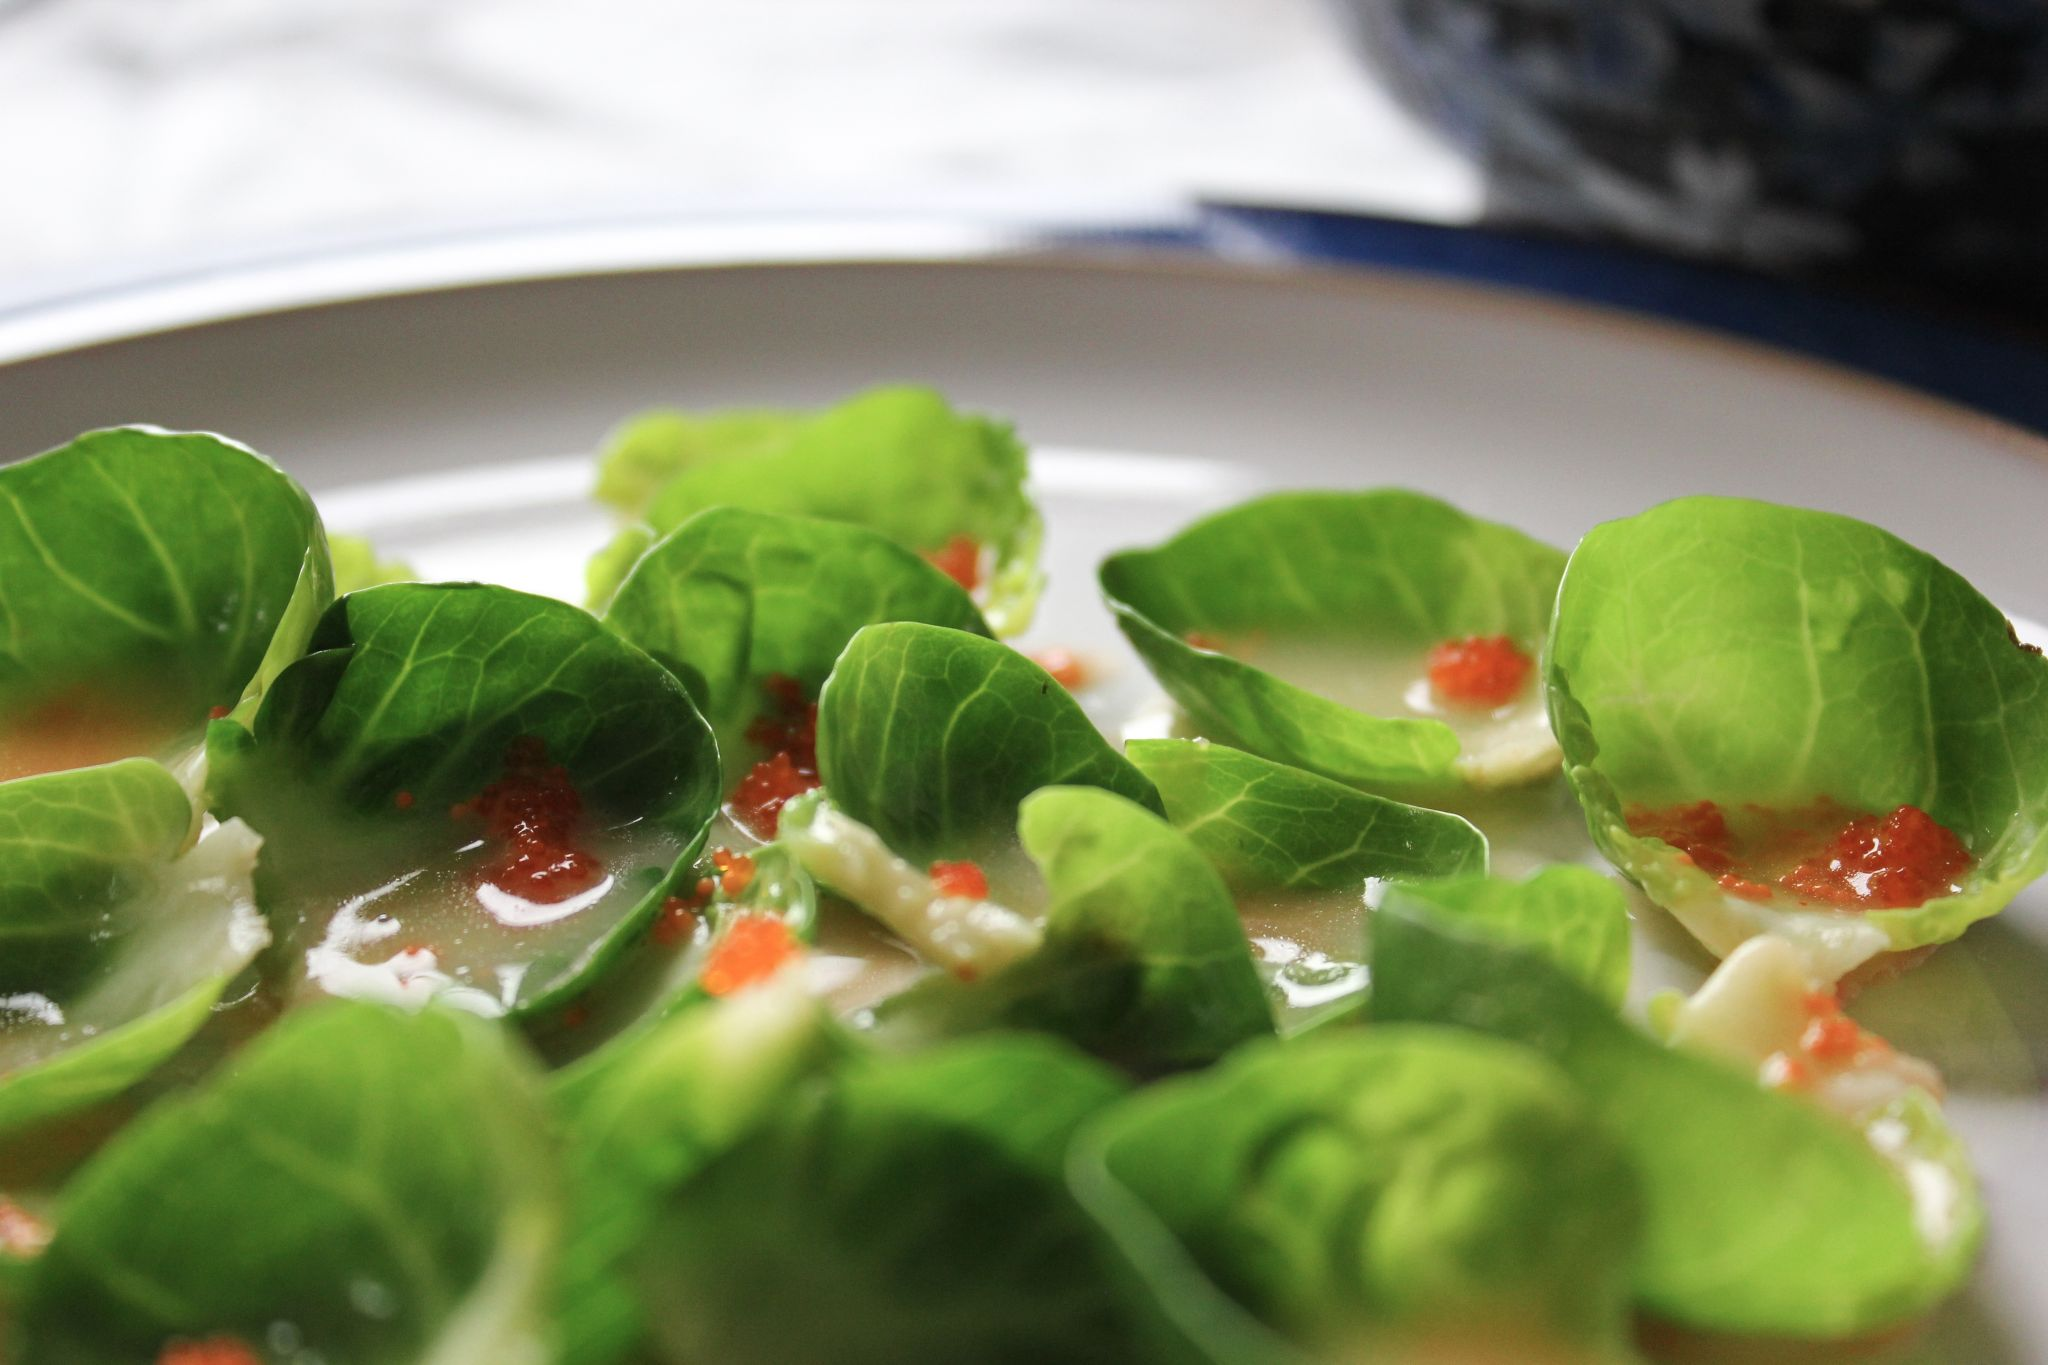 A plate of brussel sprouts leaves, drenched in white buttery sauce, with some orange fish roe.